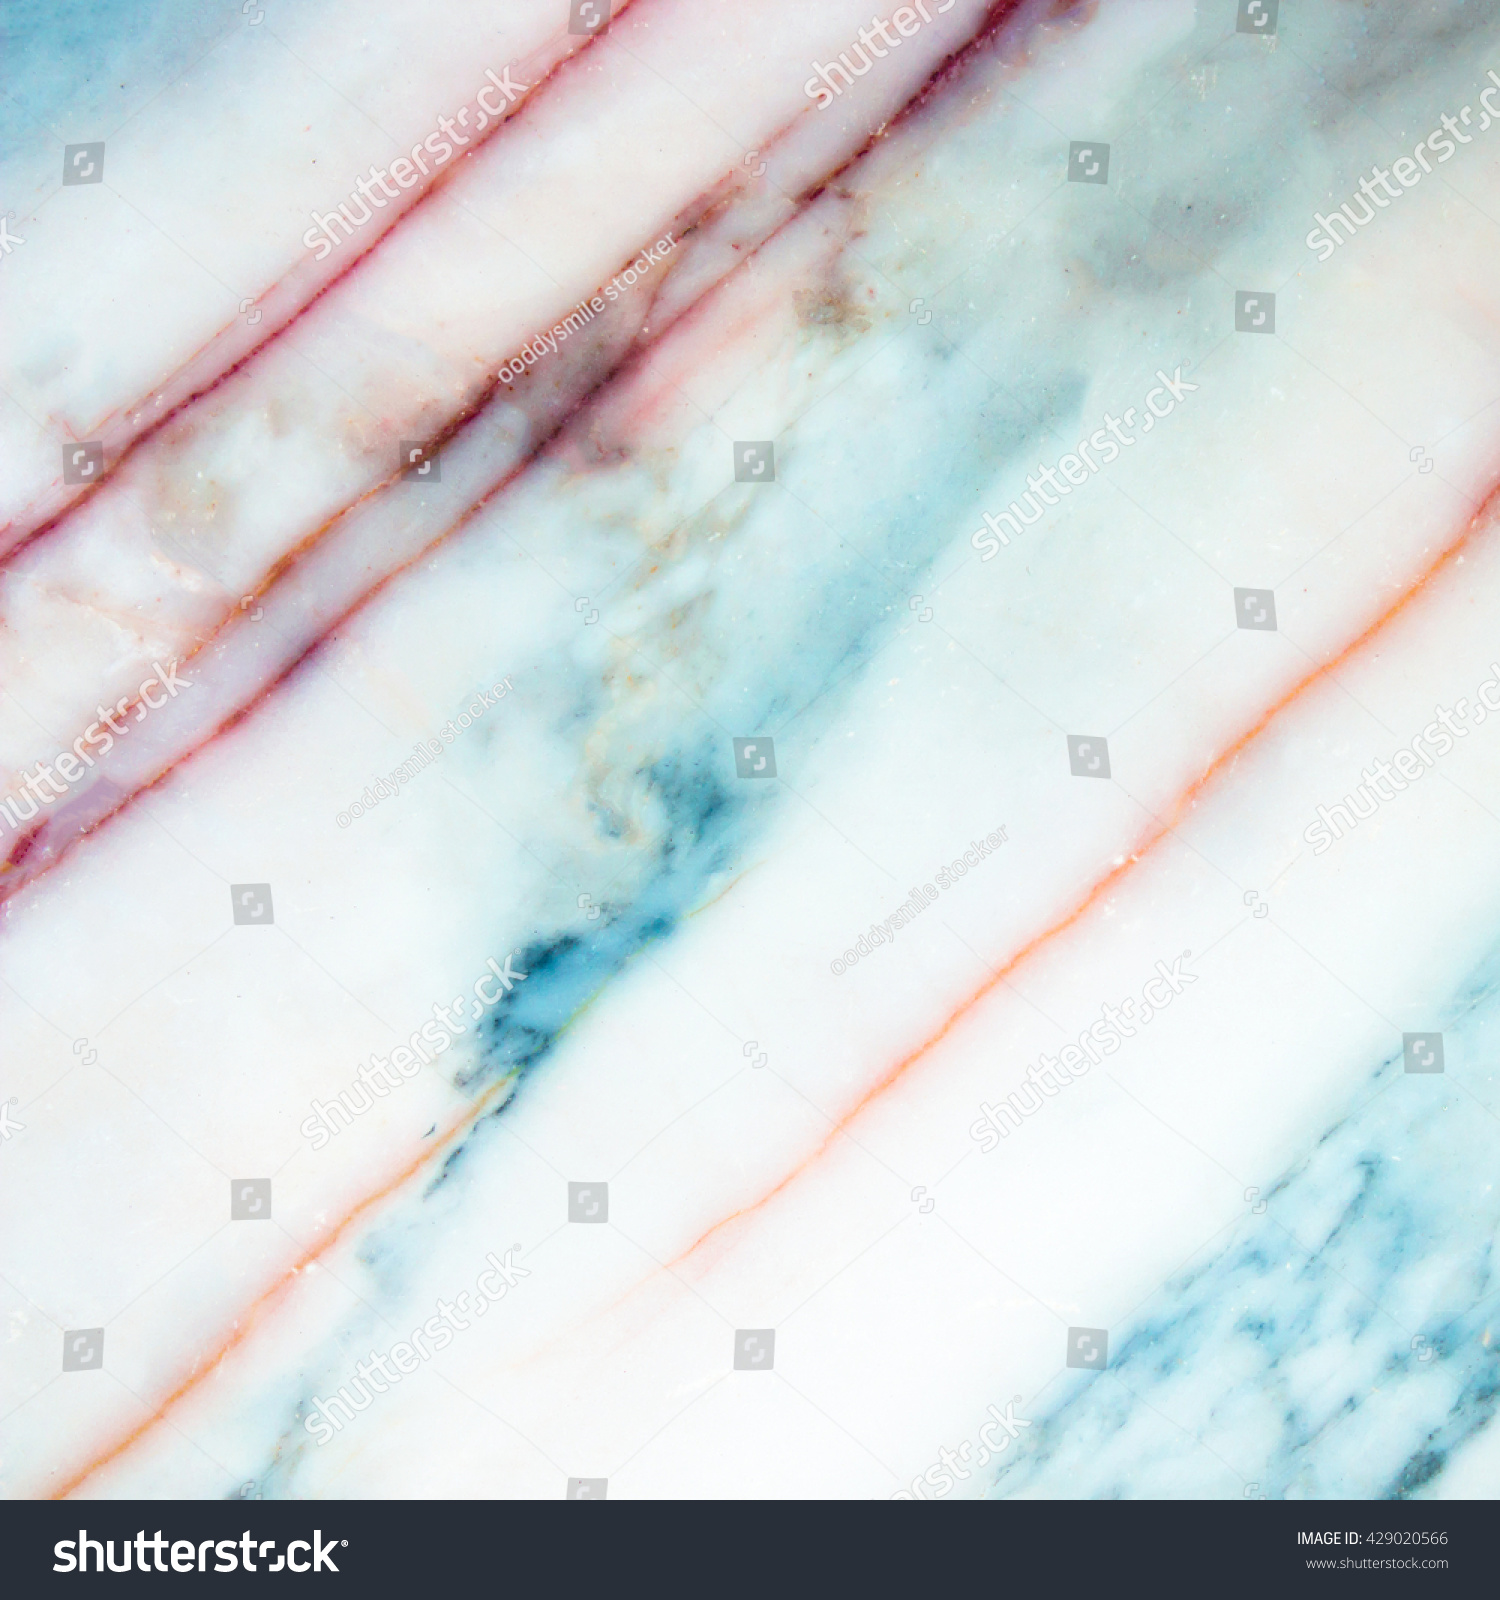 Cool Wallpaper High Quality Marble - stock-photo-white-marble-texture-background-marble-texture-background-floor-decorative-stone-interior-stone-429020566  Collection_5957.jpg